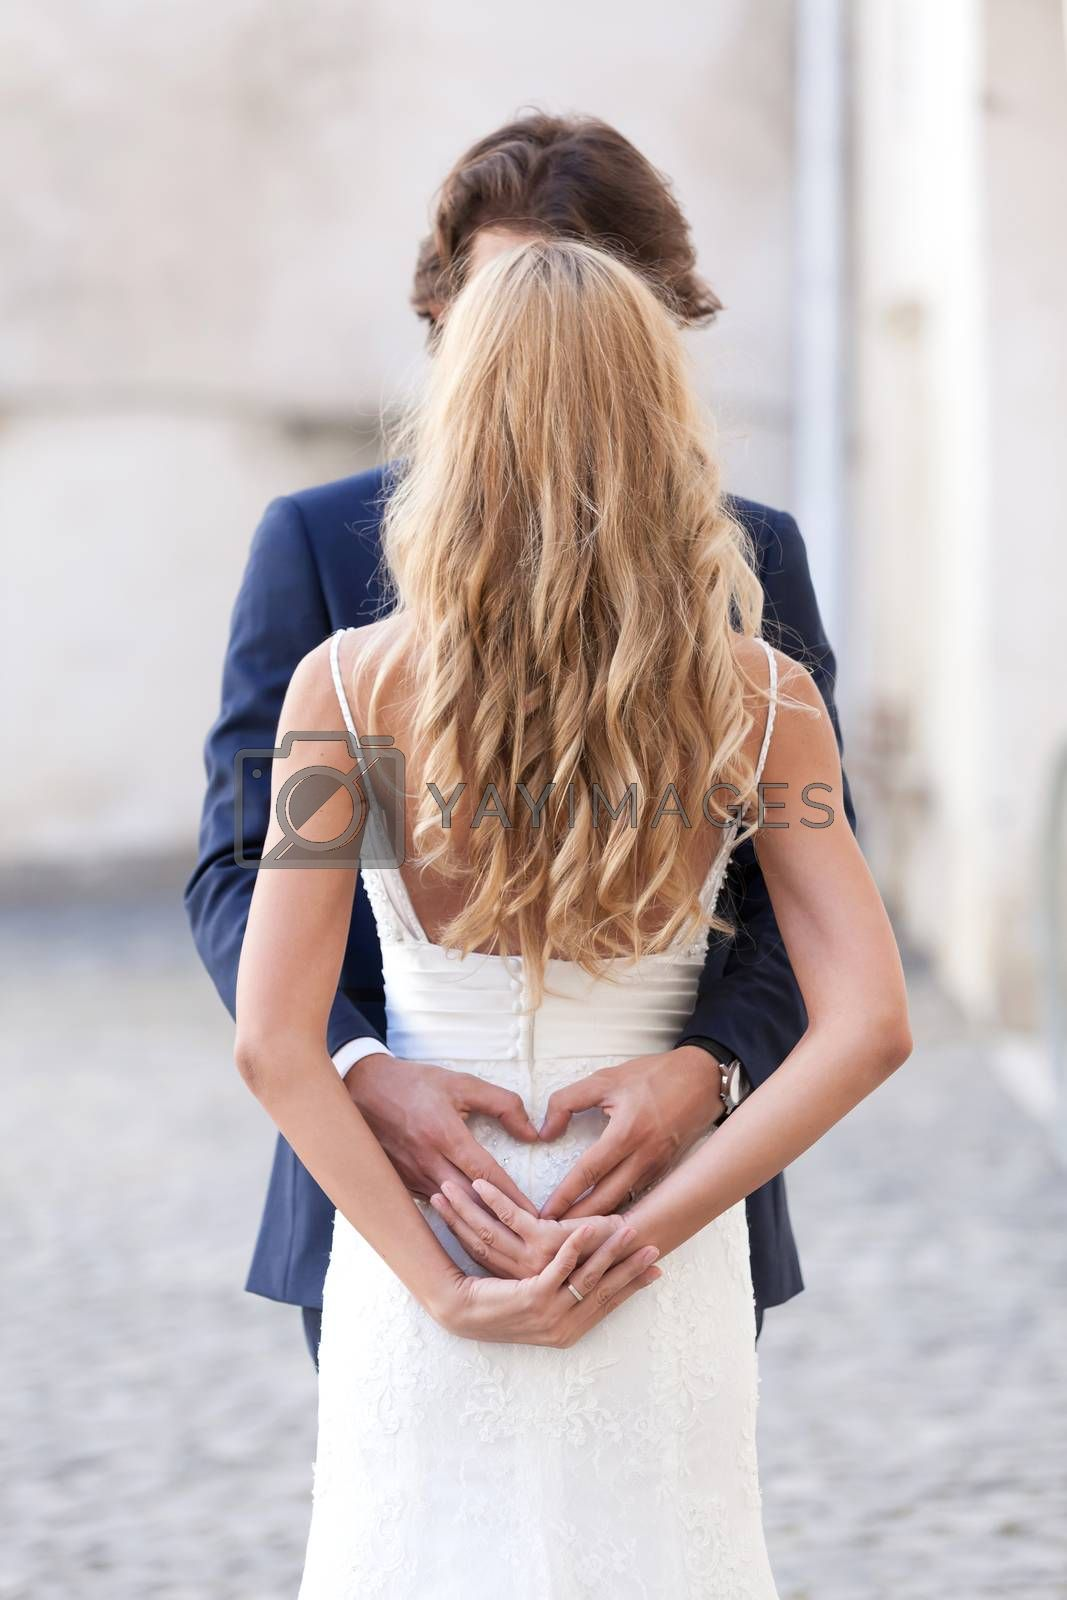 Newlywed couple holding each other, forming a heart with their hands.